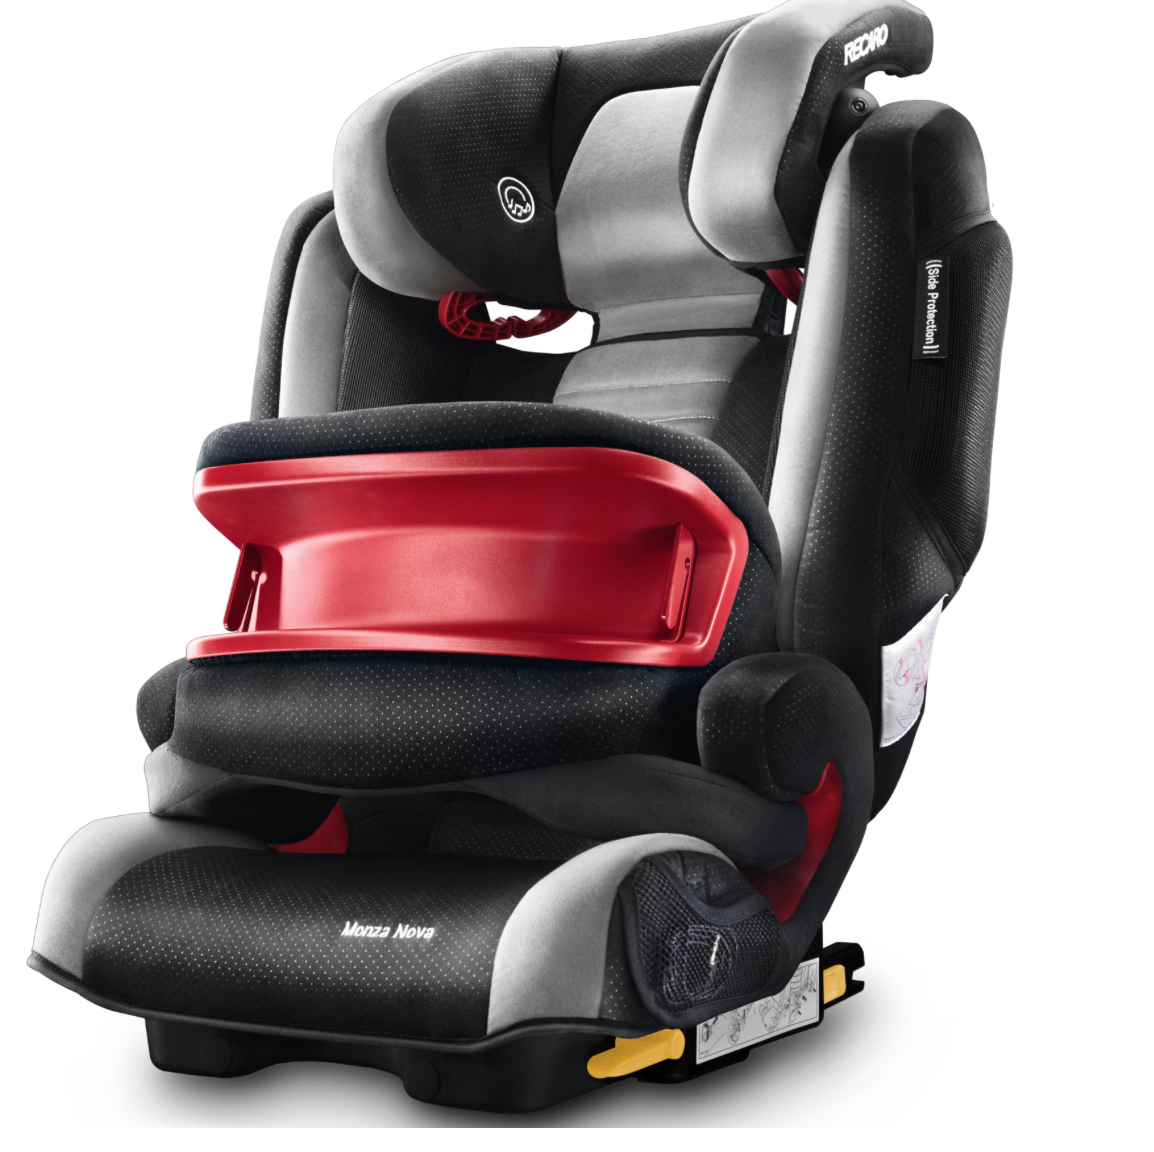 Impact shield car seats work like an airbag. I've compared 5 different market leading brands to see which would work best for my child.